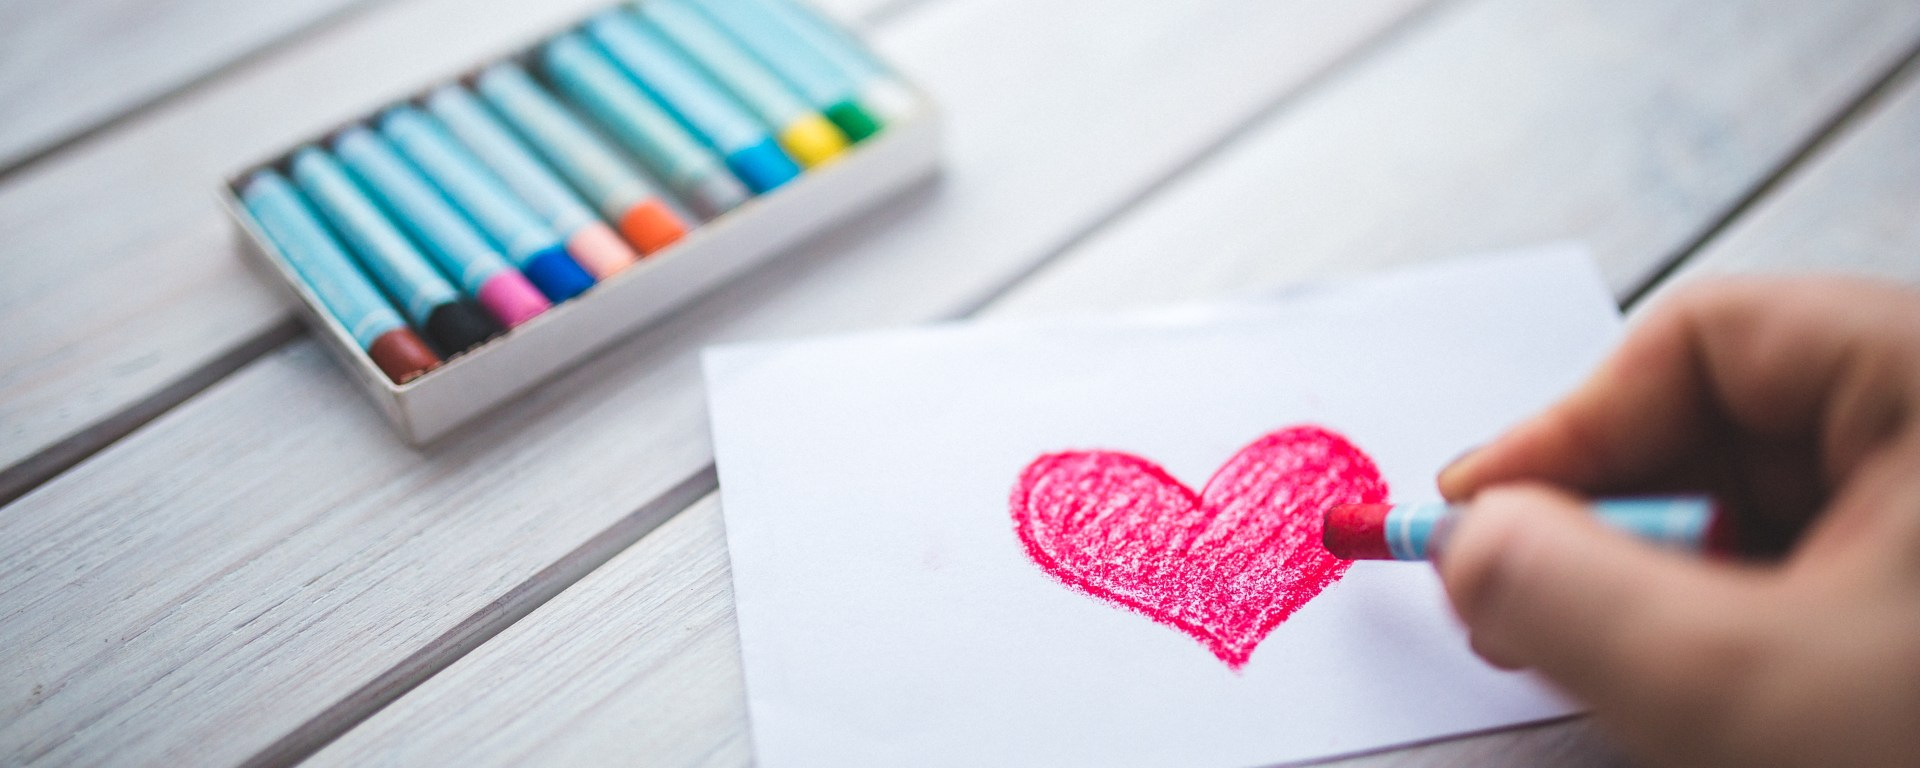 Hand drawing a heart in crayon.